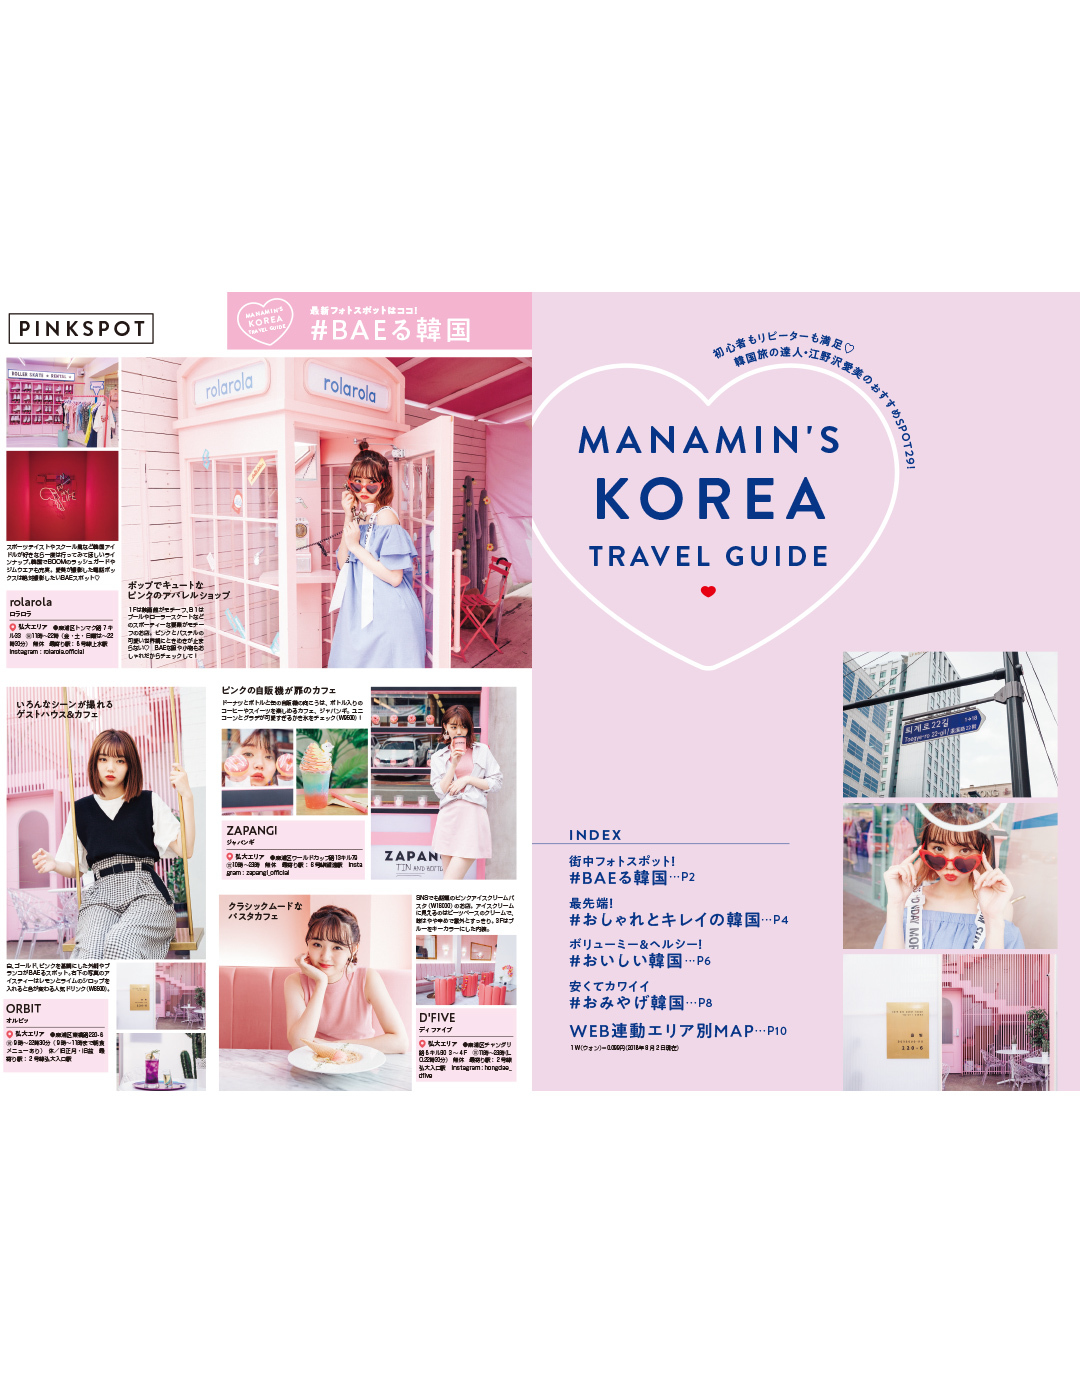 MANAMIN'S KOREA TRAVEL GUIDE